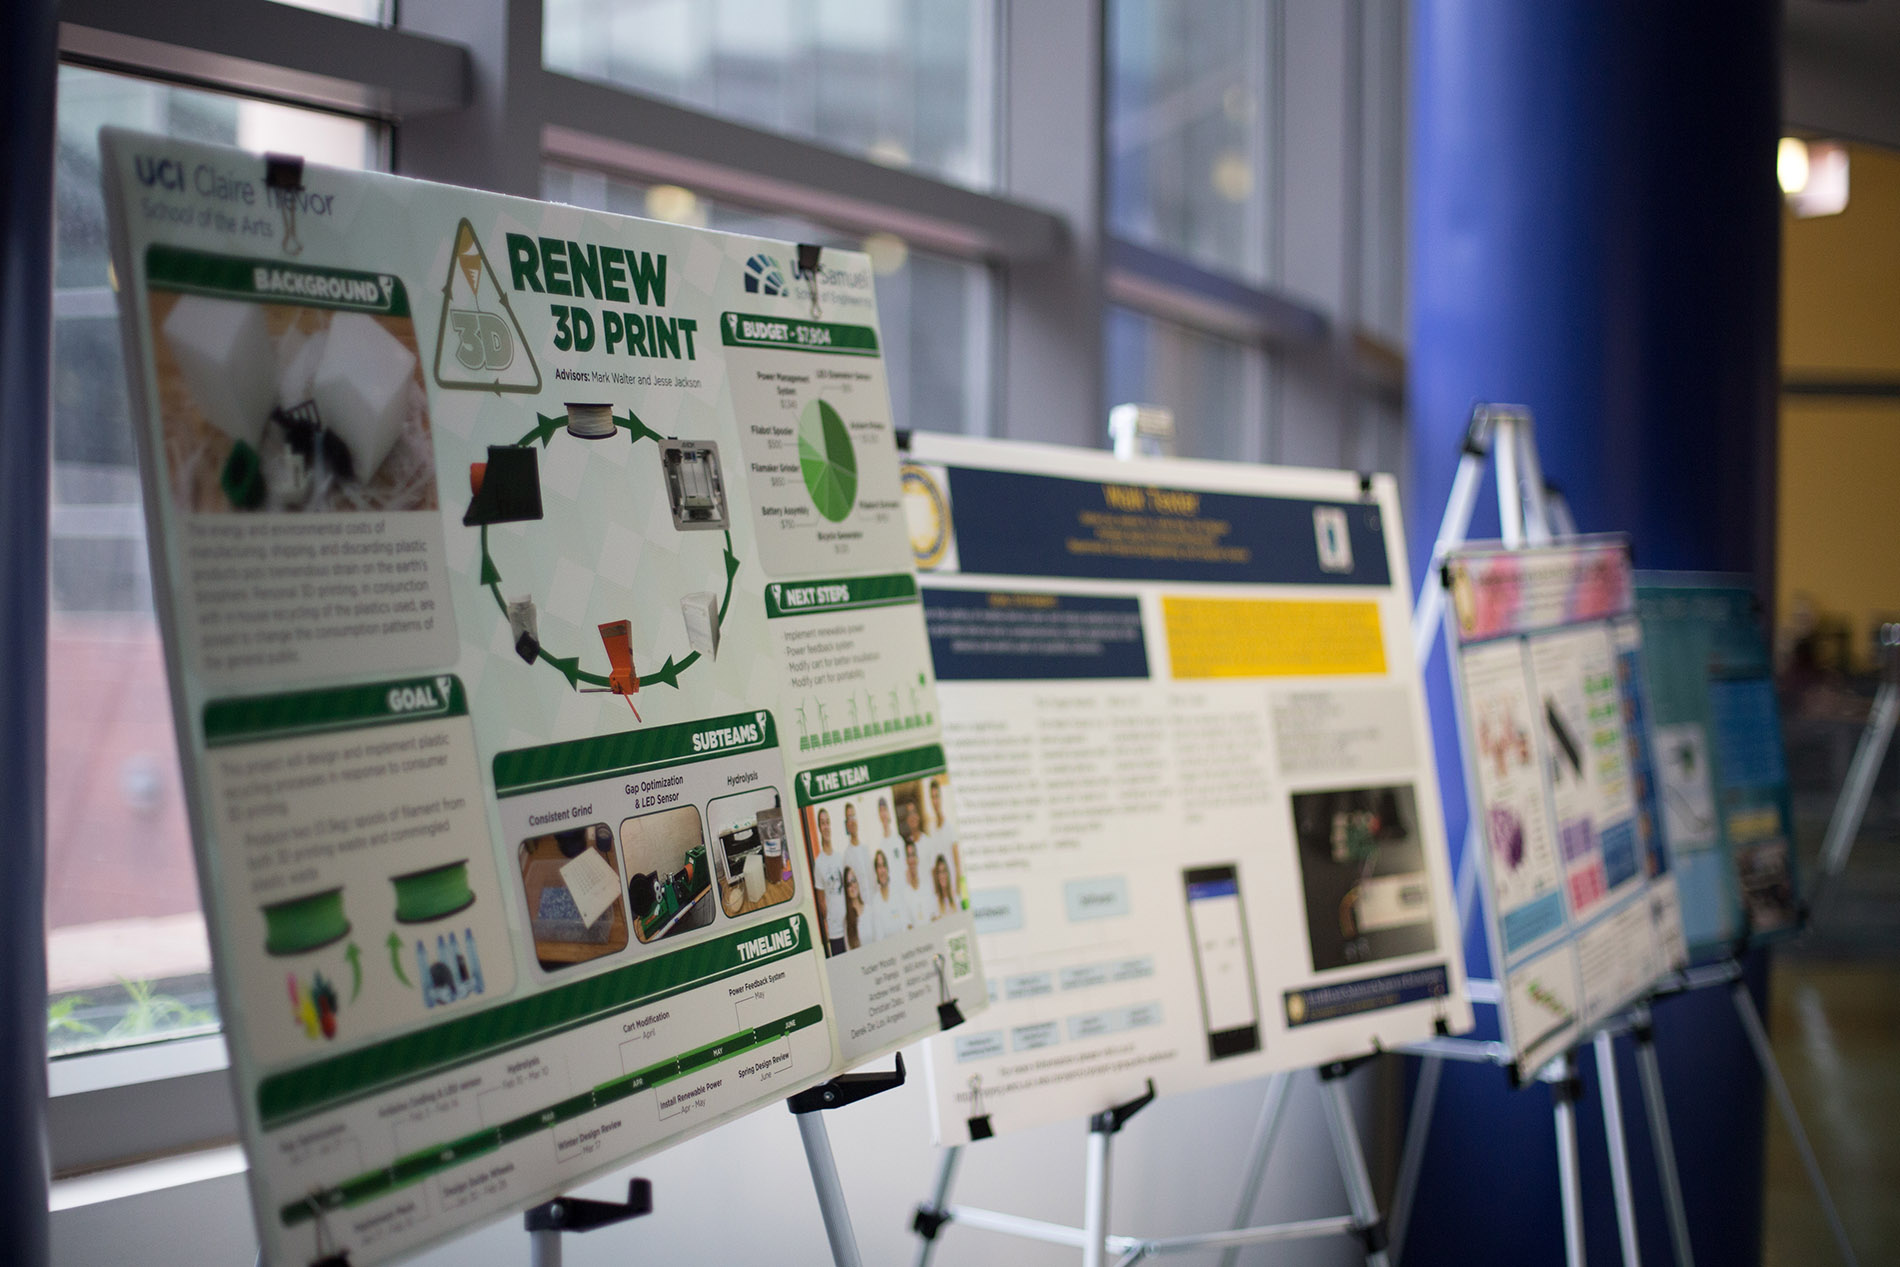 dean s choice awards for engineering senior design posters 2017 uc